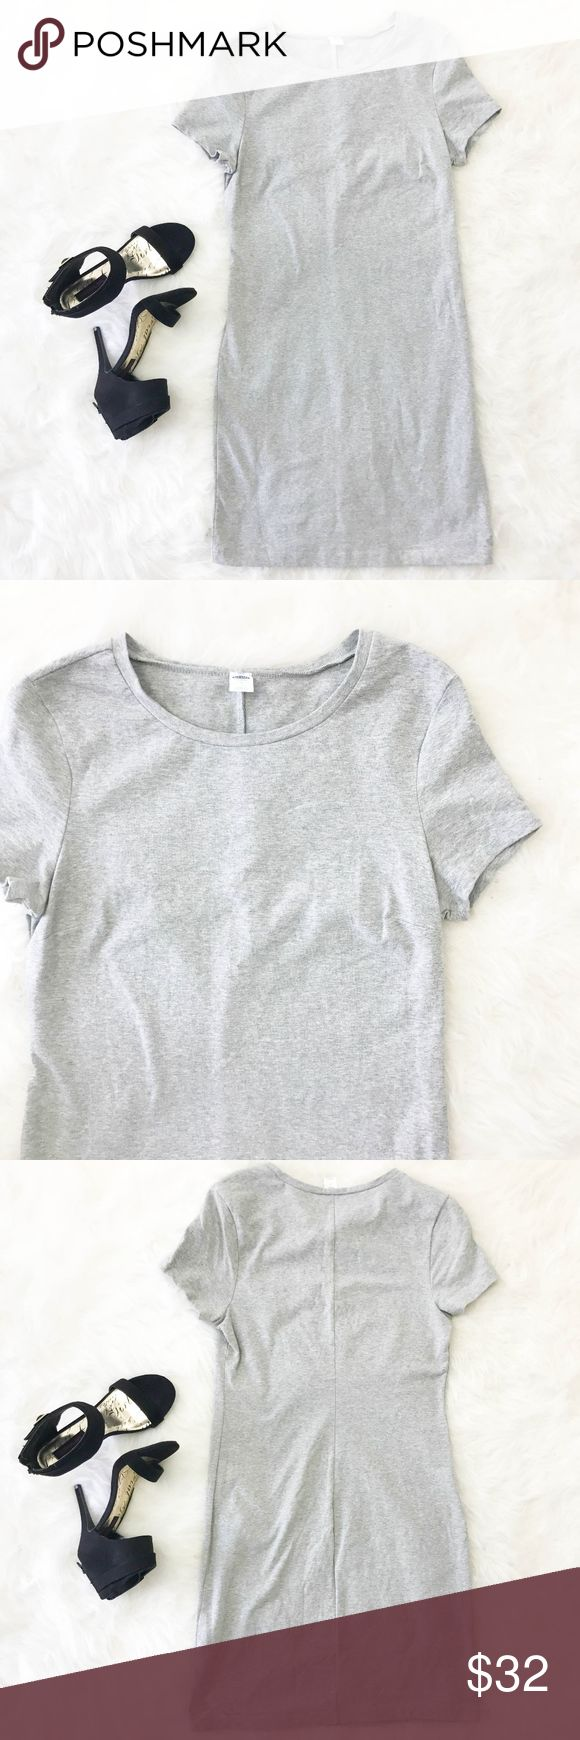 """Old Navy Dress T-shirt Bodycon Medium Gray Sheath Old Navy Women's Dress T-shirt Bodycon Medium Short Sleeve Gray Sheath Stretch   Type: Dress  Style: Bodycon, T-shirt, Sheath  Brand: Old Navy  Material: 93% Cotton 7% Spandex  Color: Gray  Measurements: Bust: 18"""" Waist: 16"""" Length: 36""""  Condition: No snags, pilling, or stains. RUNS SMALL, PLEASE REFERENCE MEASUREMENTS.  Country of Manufacturer: Indonesia  Listing is for Dress ONLY. Anything else in the photos is NOT included. Old Navy…"""